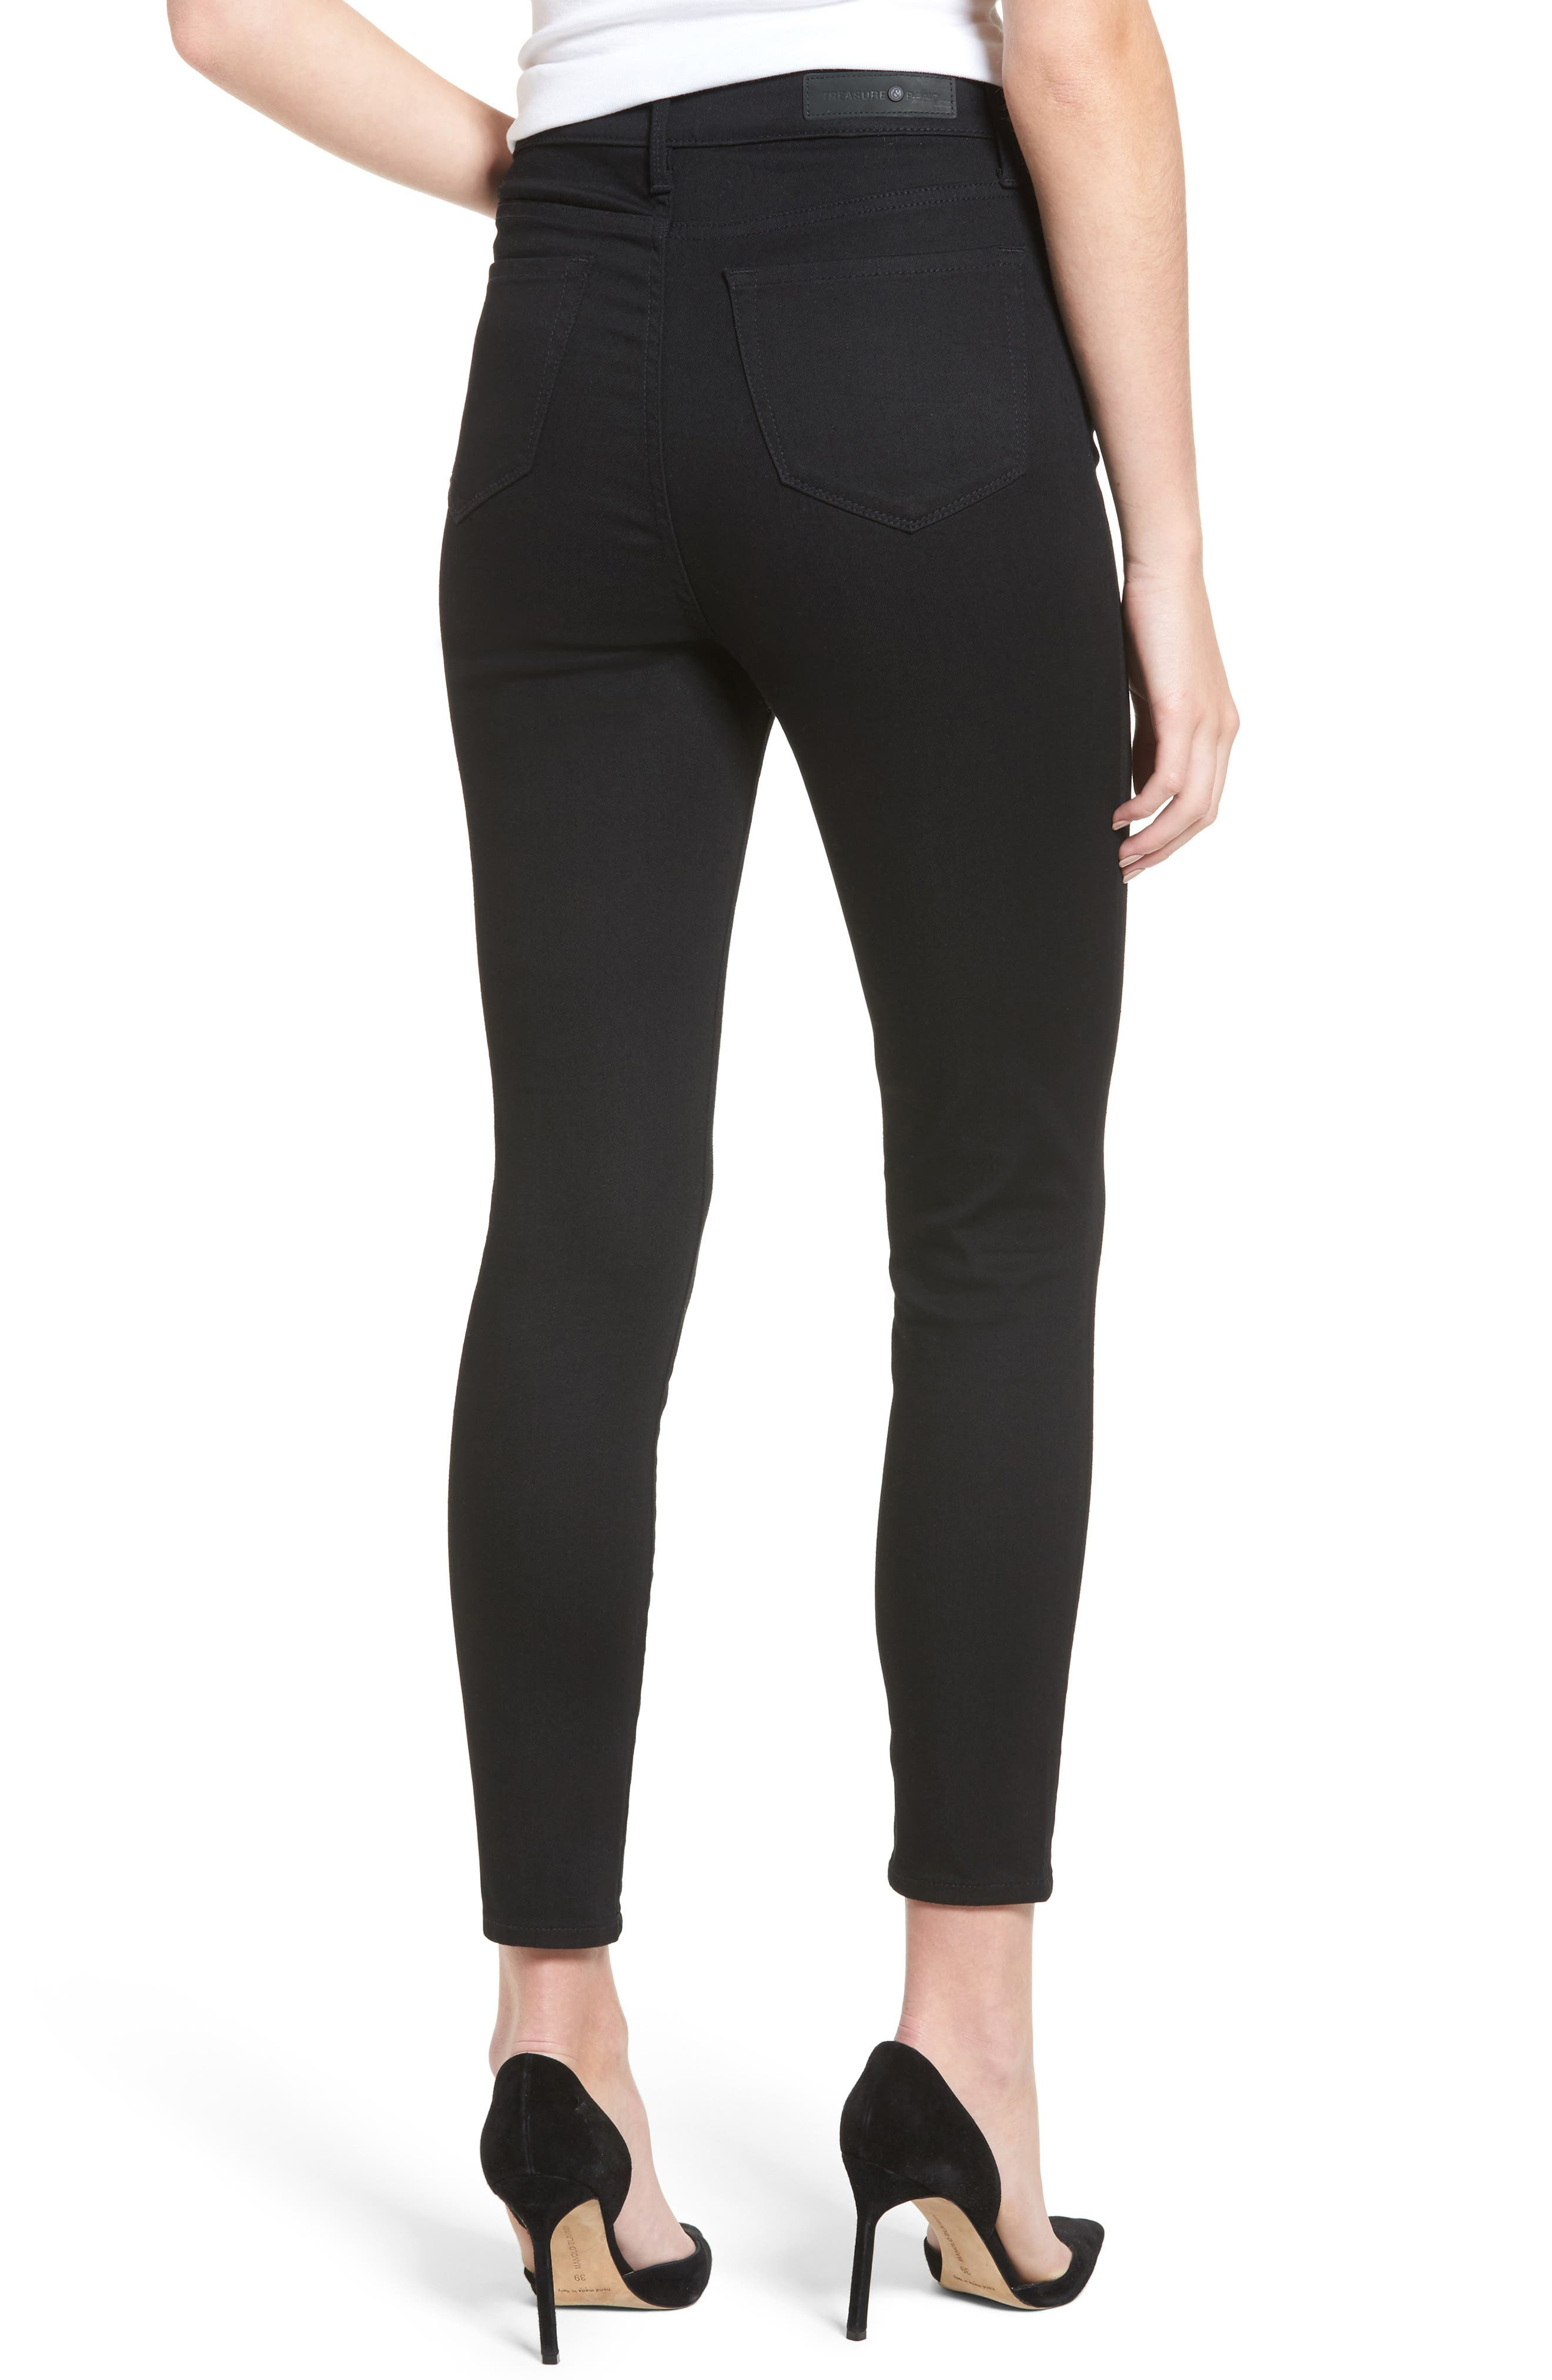 Charity High Waist Crop Skinny Jeans,                             Alternate thumbnail 3, color,                             Midnight Rinse